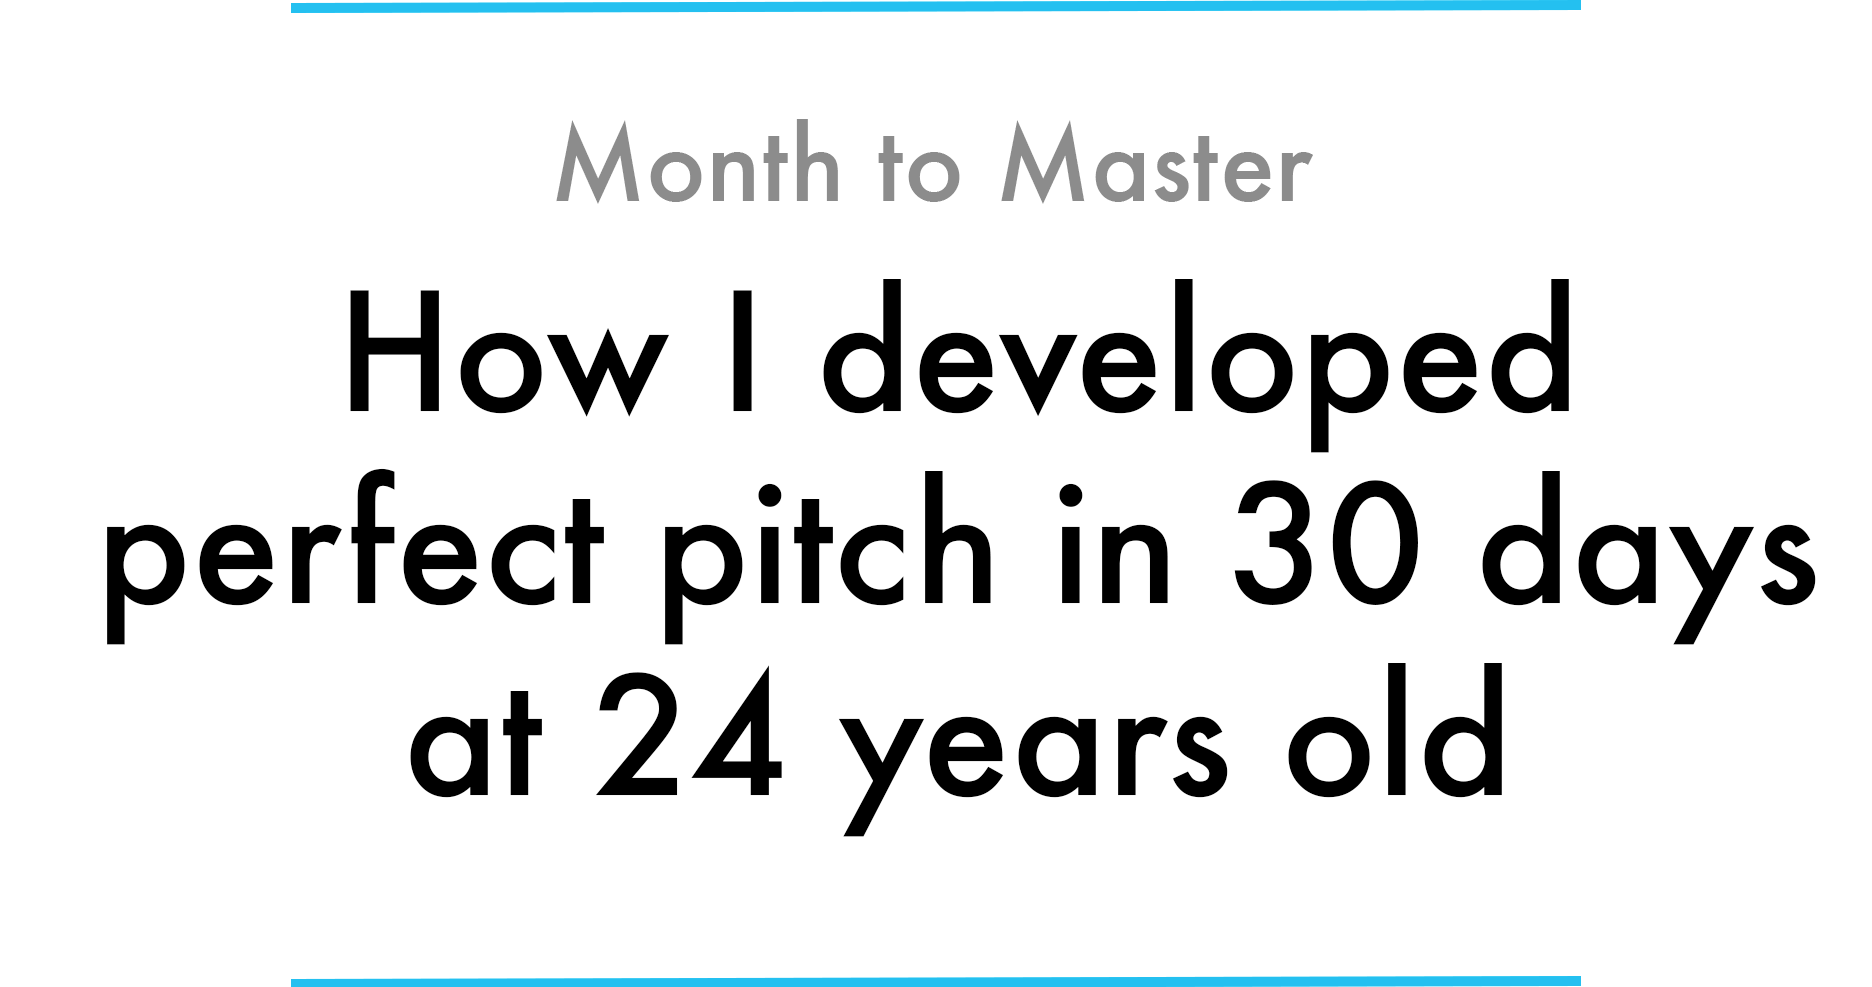 How I developed perfect pitch in 30 days at 24 years old